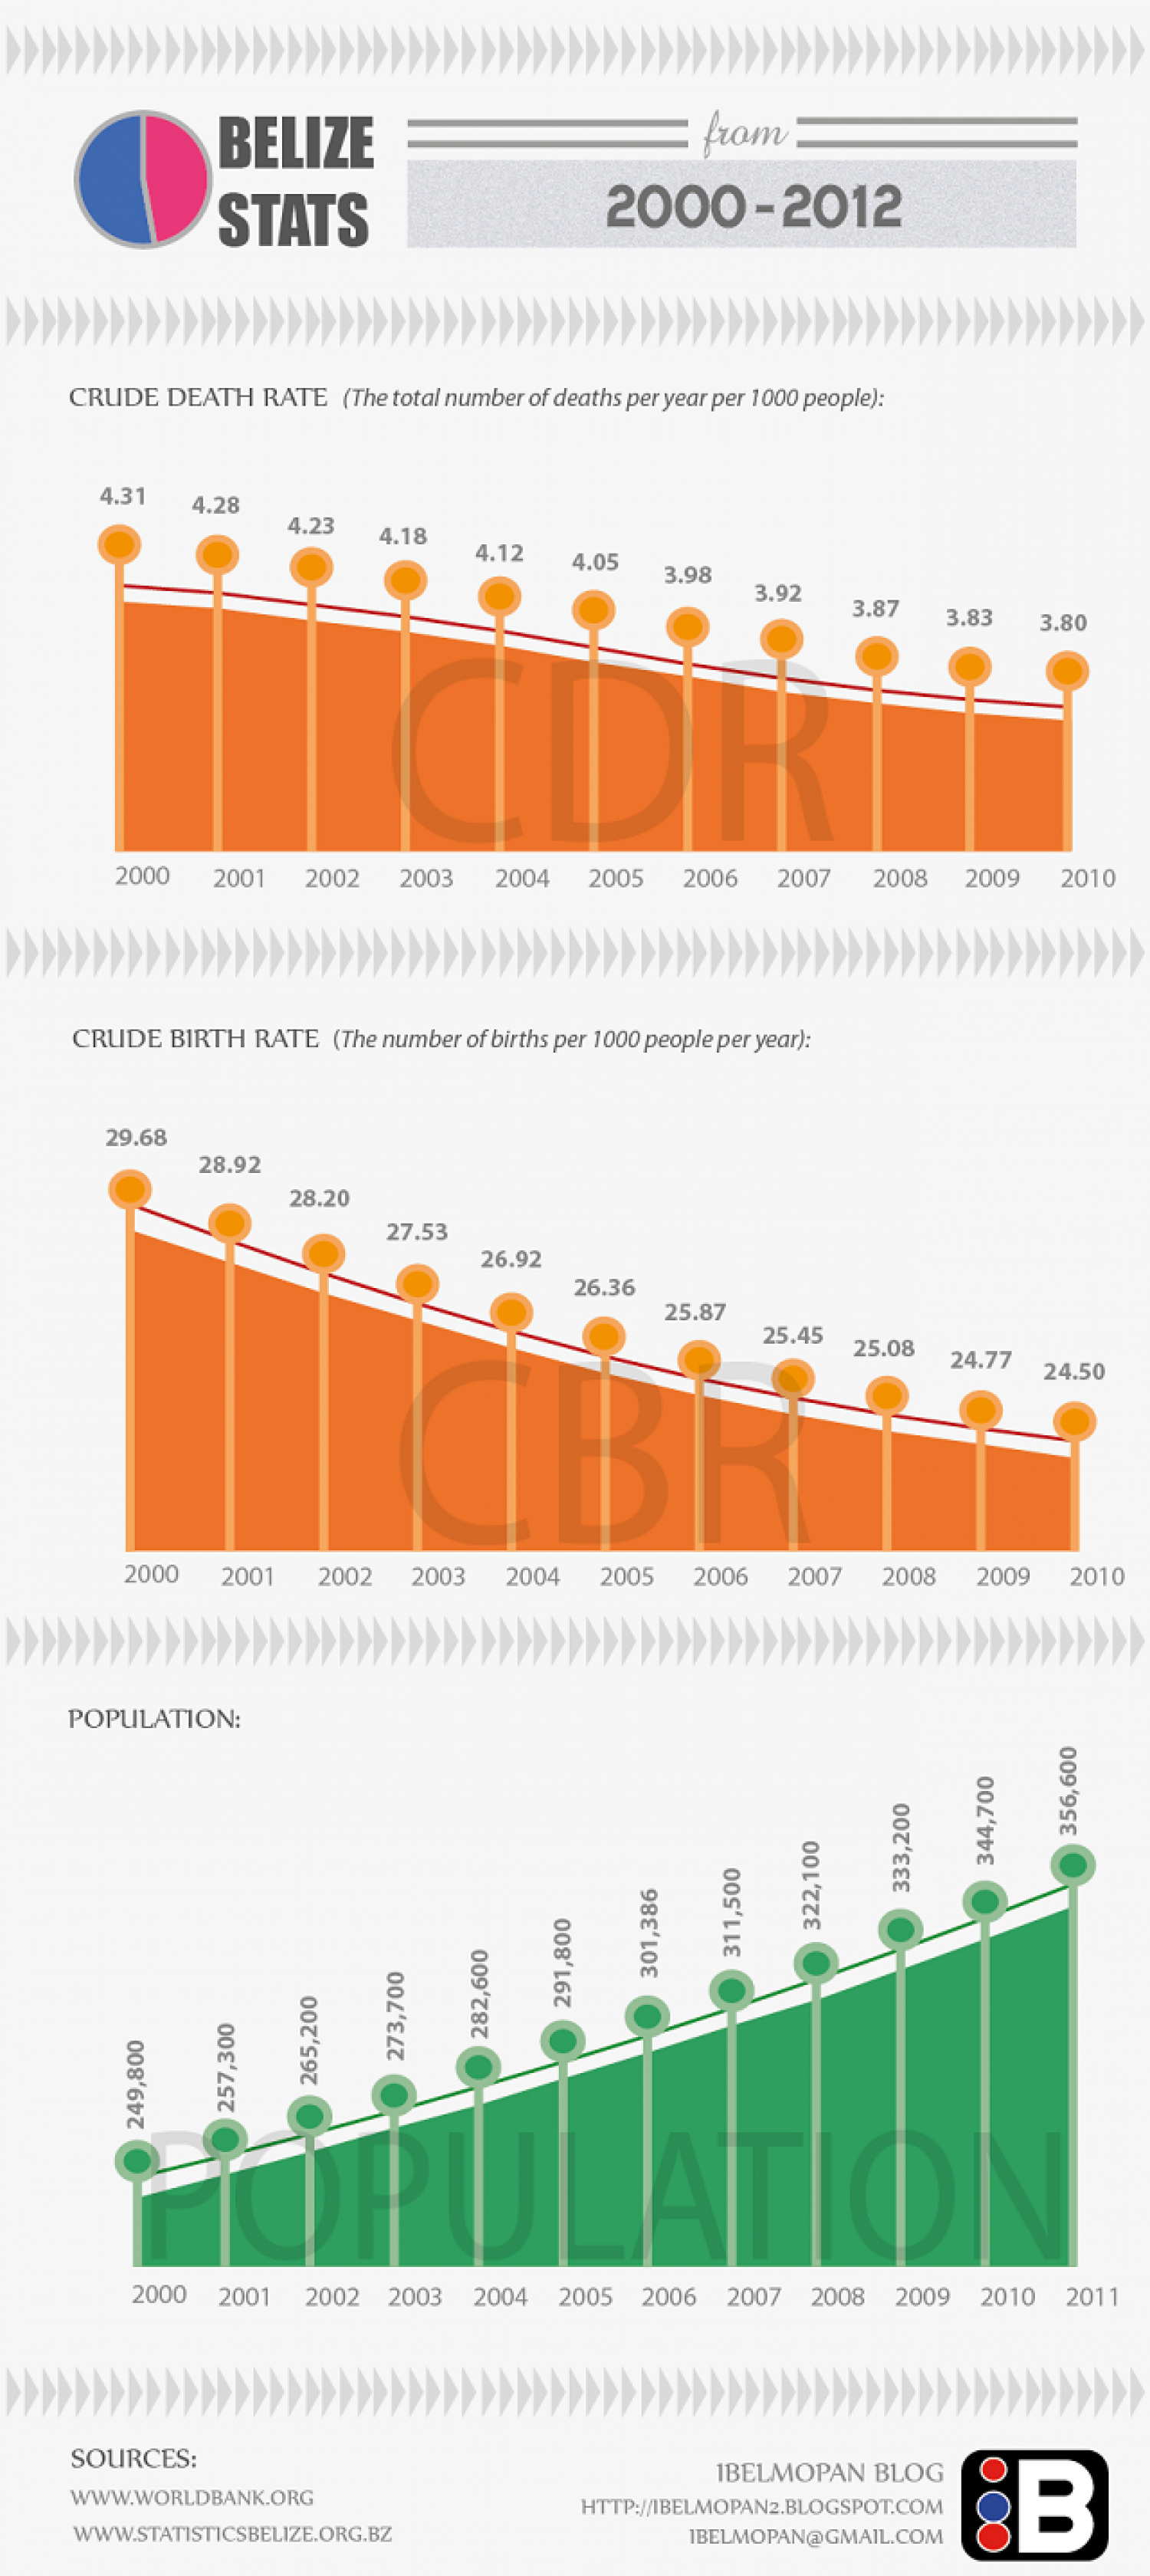 Belize Statistics From 2000 to 2012  Infographic